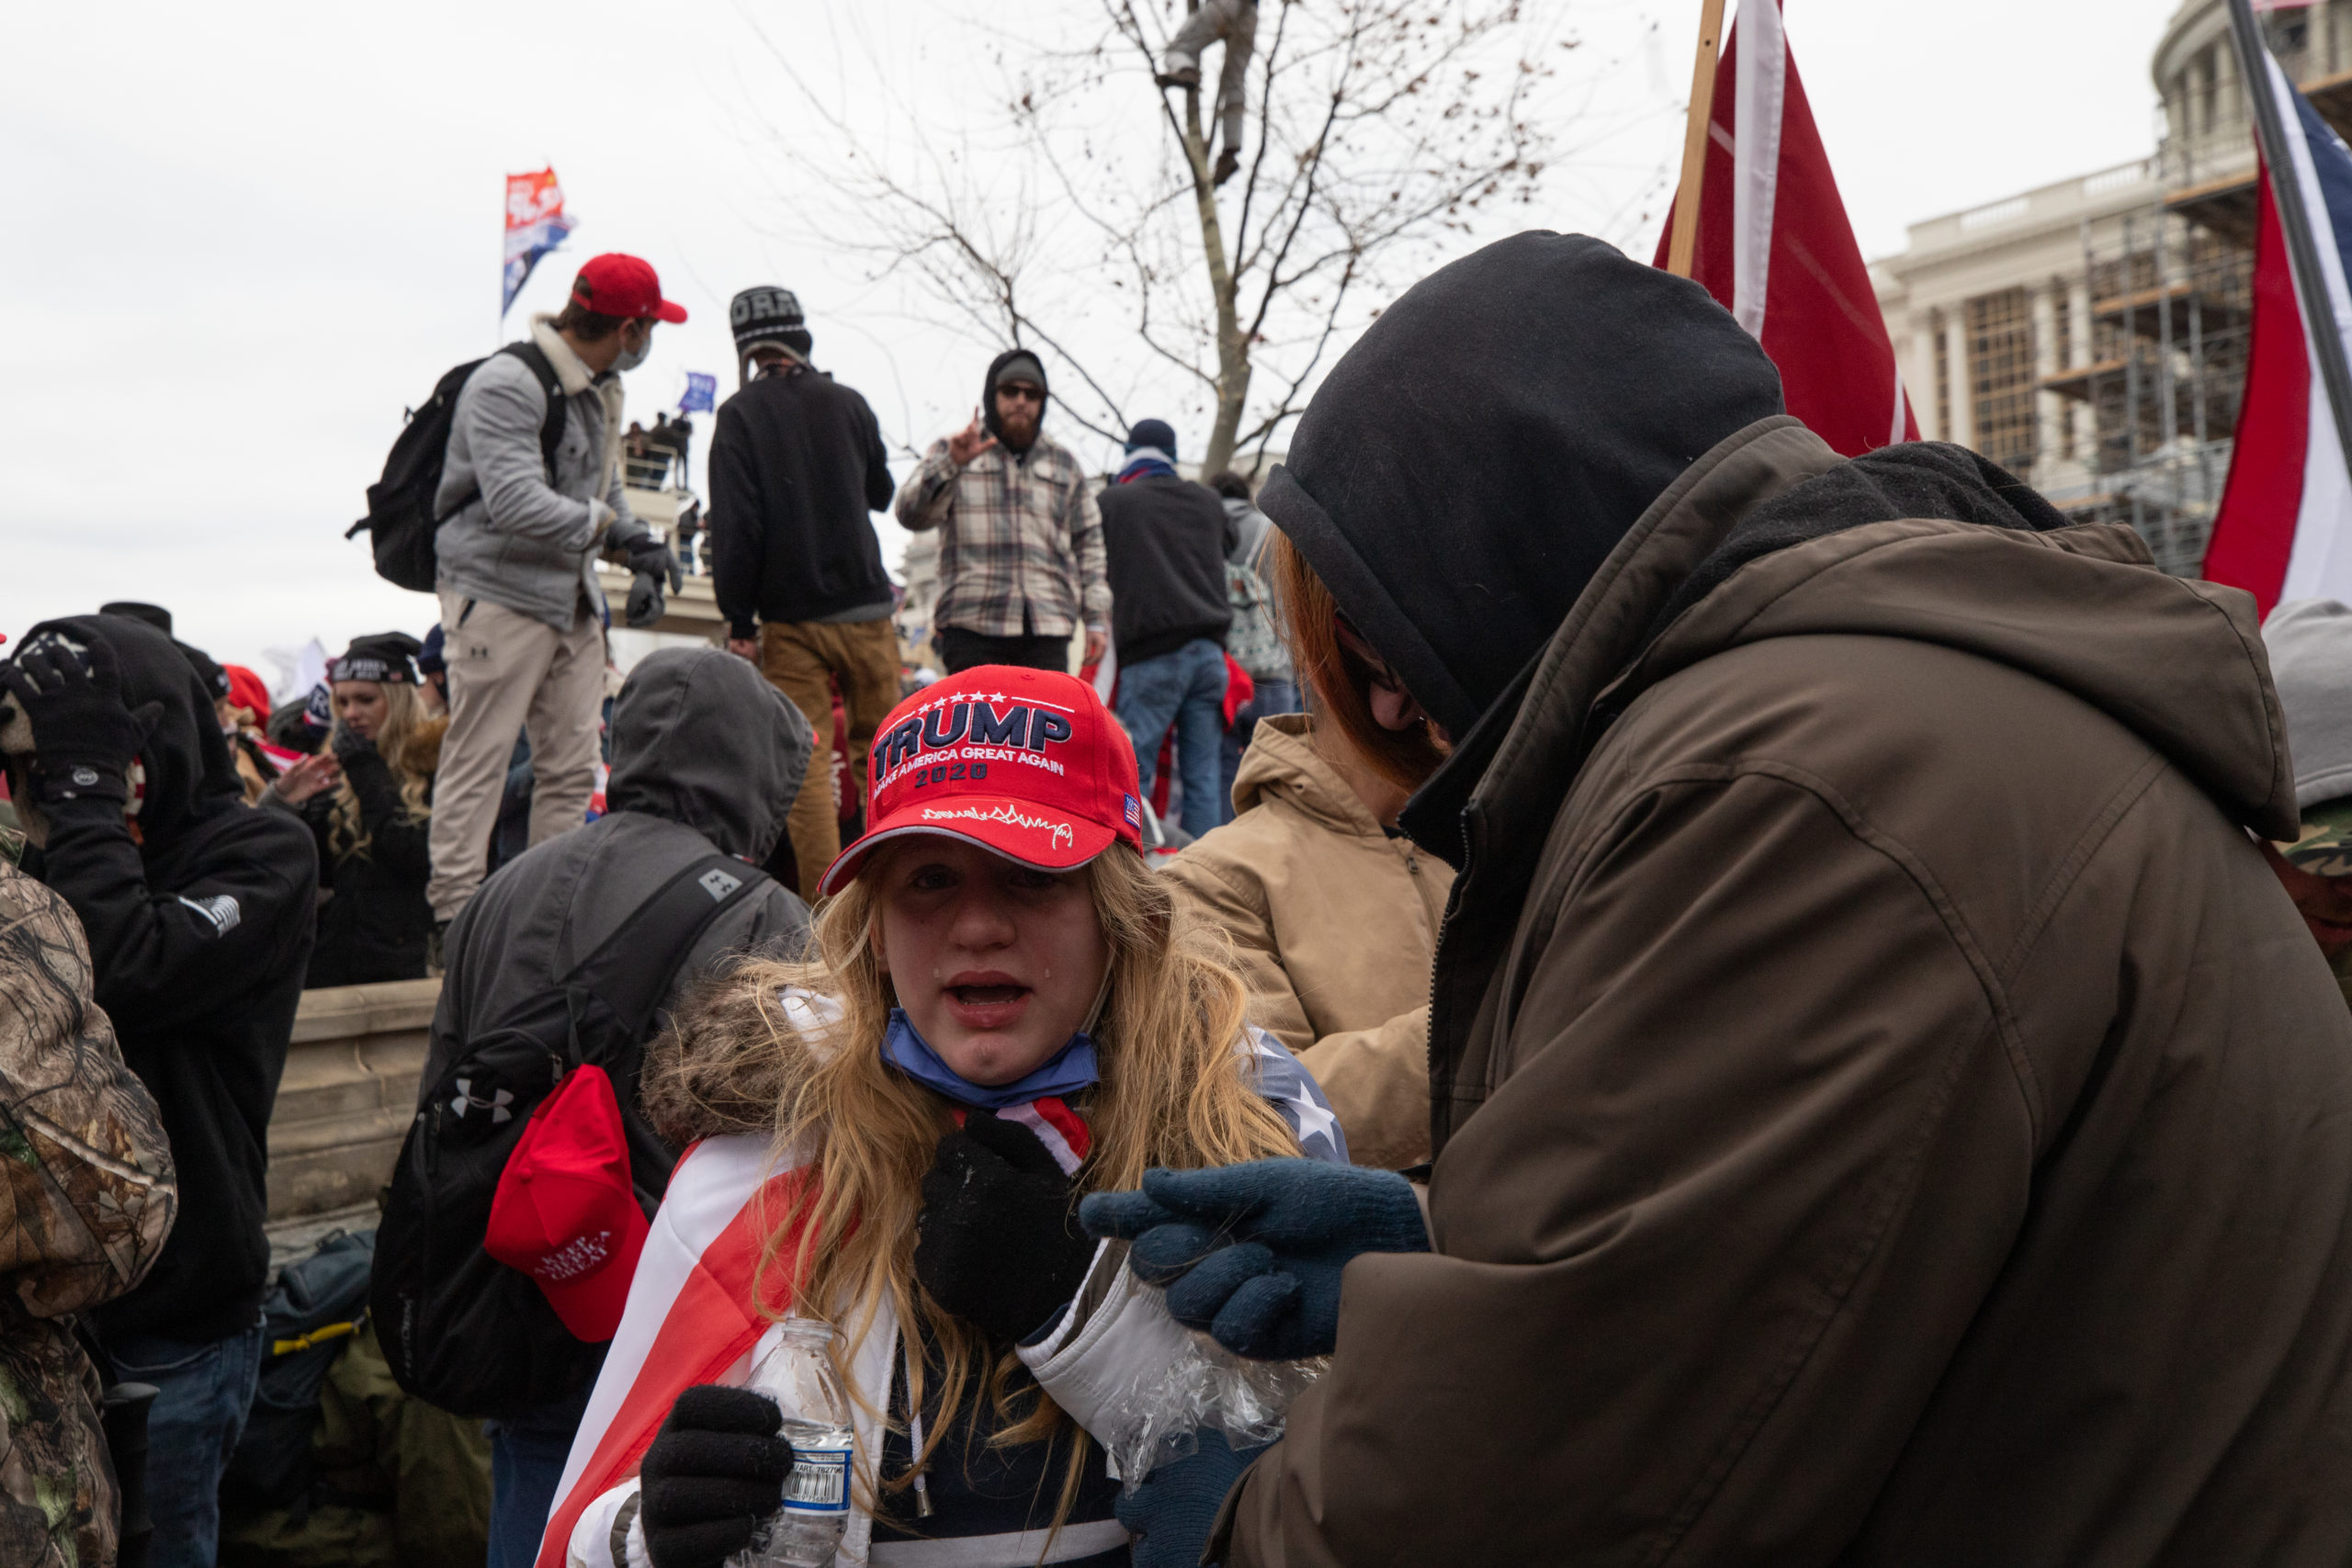 A child was affected by the tear gas deployed by law enforcement officials in Washington, D.C. on Jan. 6, 2021. (Kaylee Greenlee - Daily Caller News Foundation)